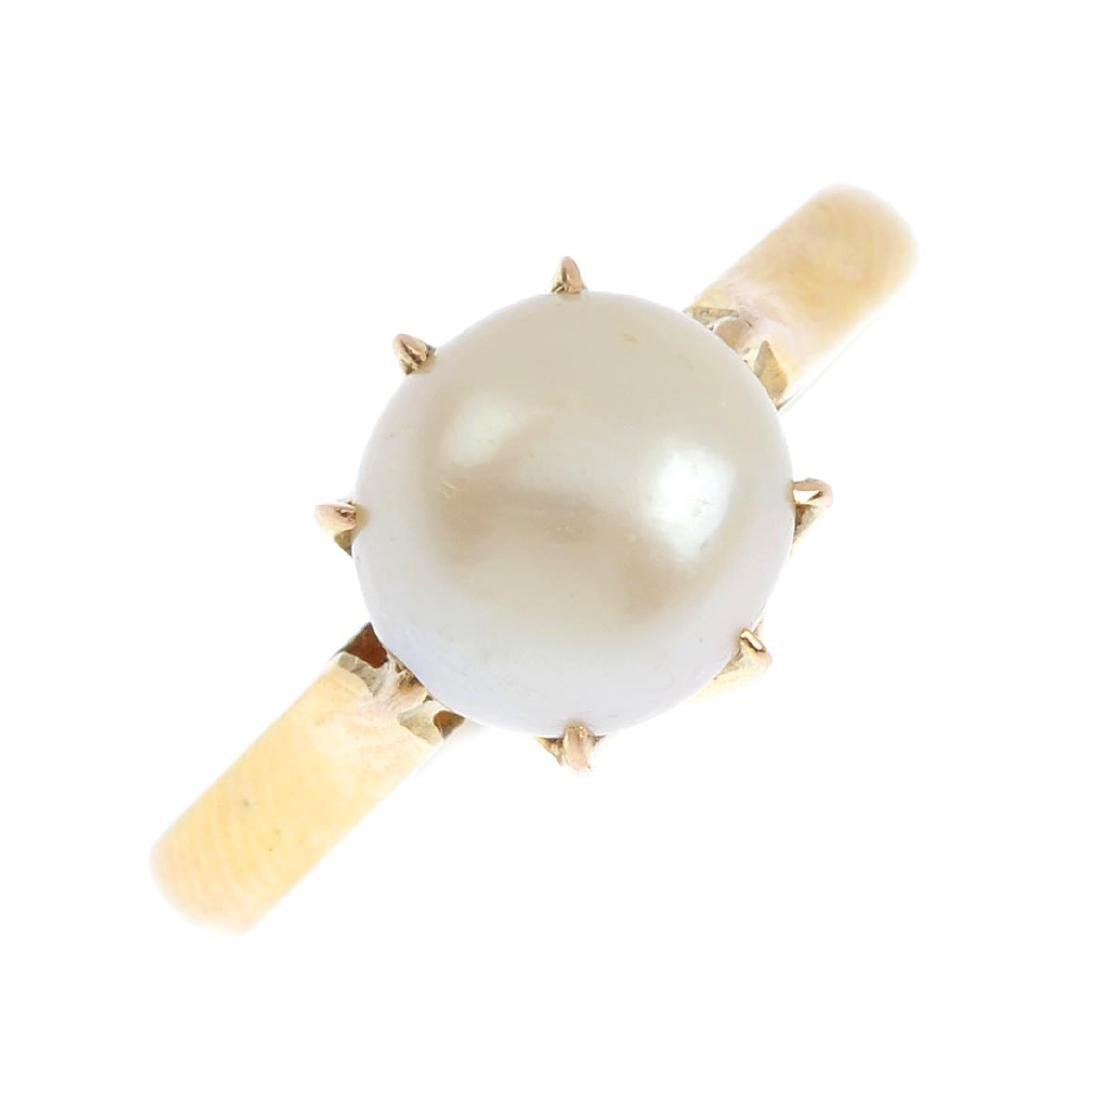 A cultured pearl ring. The cultured pearls, measuring